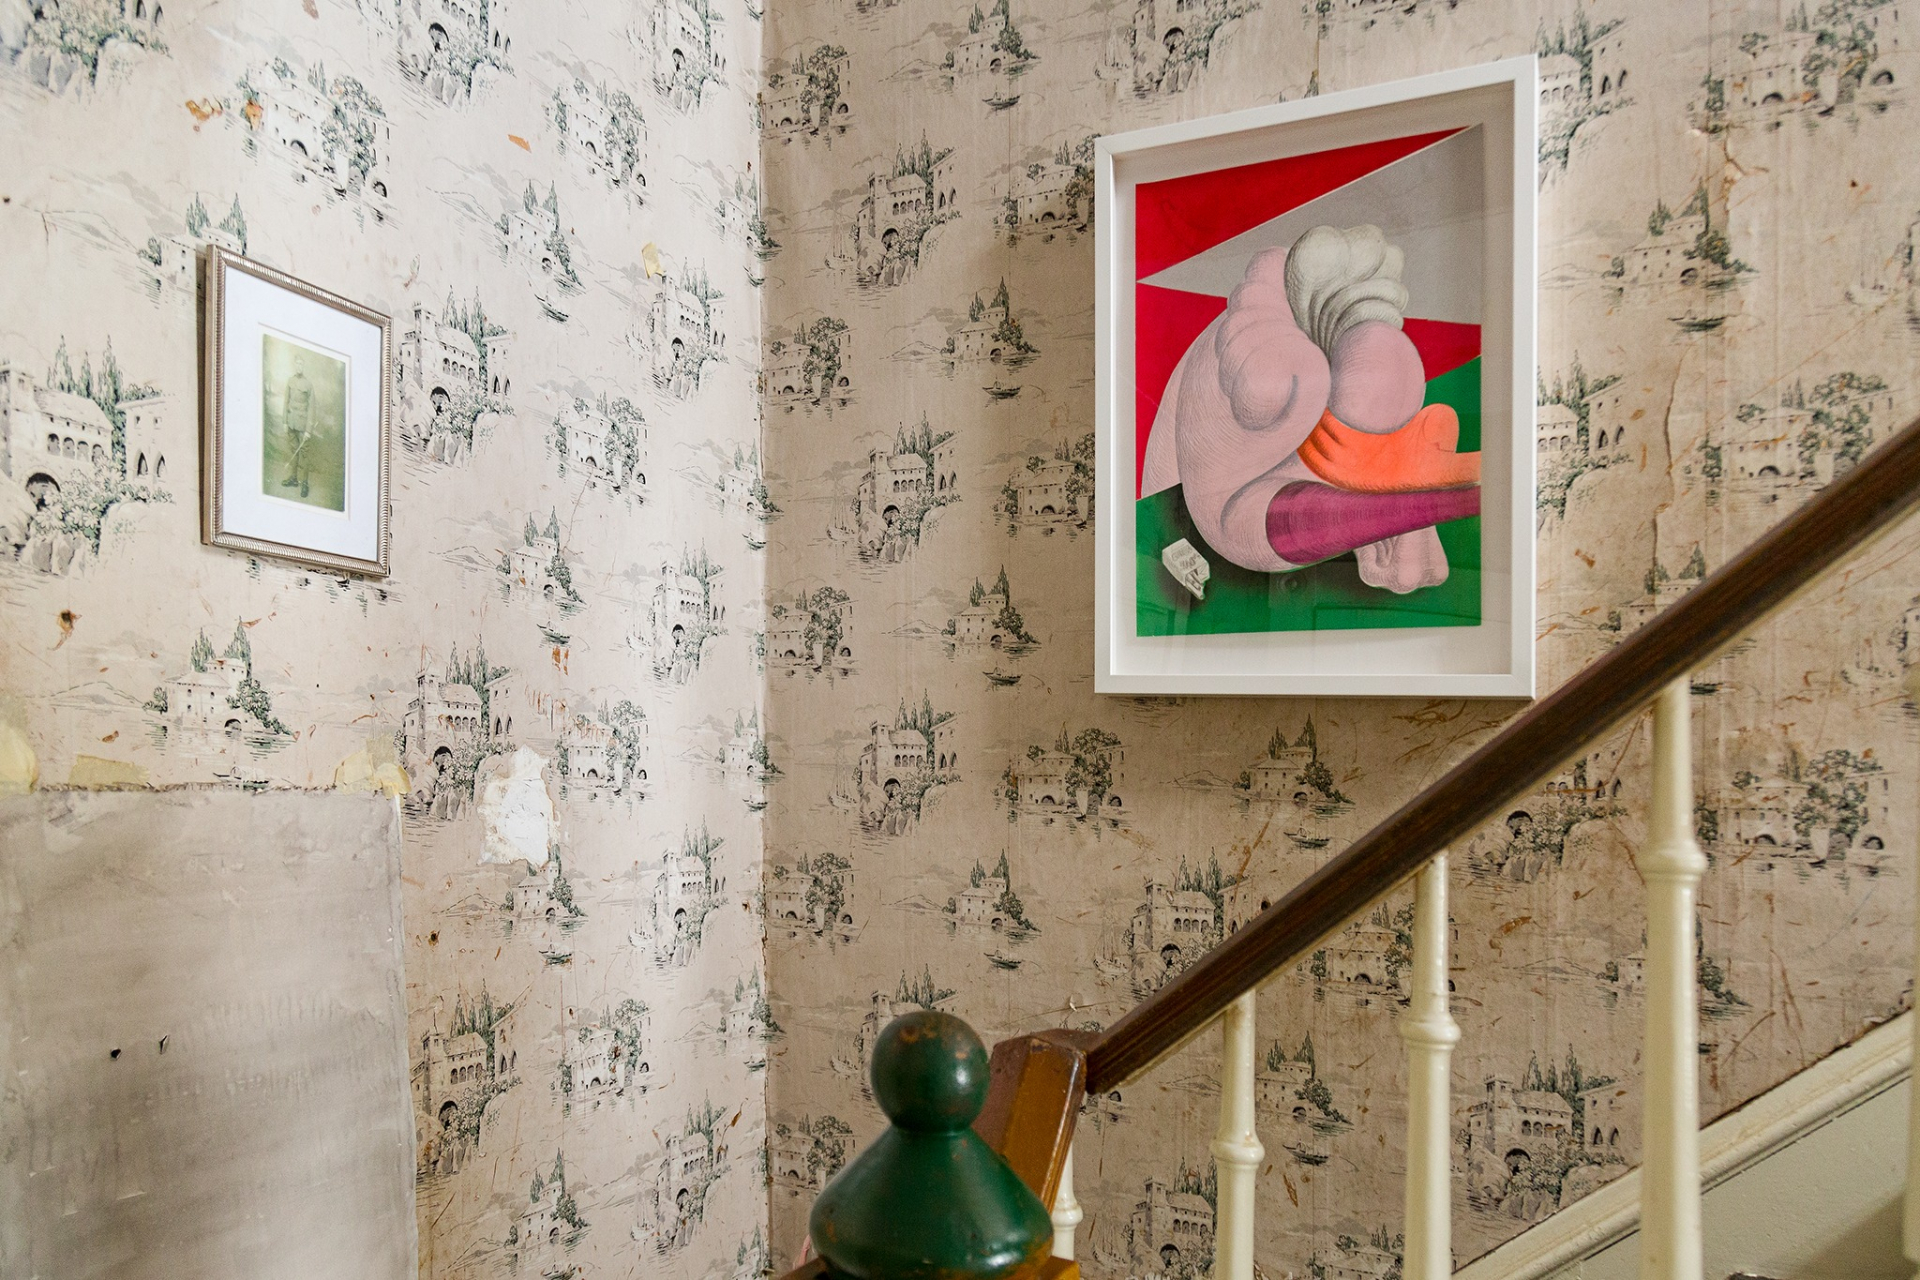 An installation view of the exhibition, Mike Goodlett: Chez Lui, at MARCH, Lexington, Kentucky, in 2021.